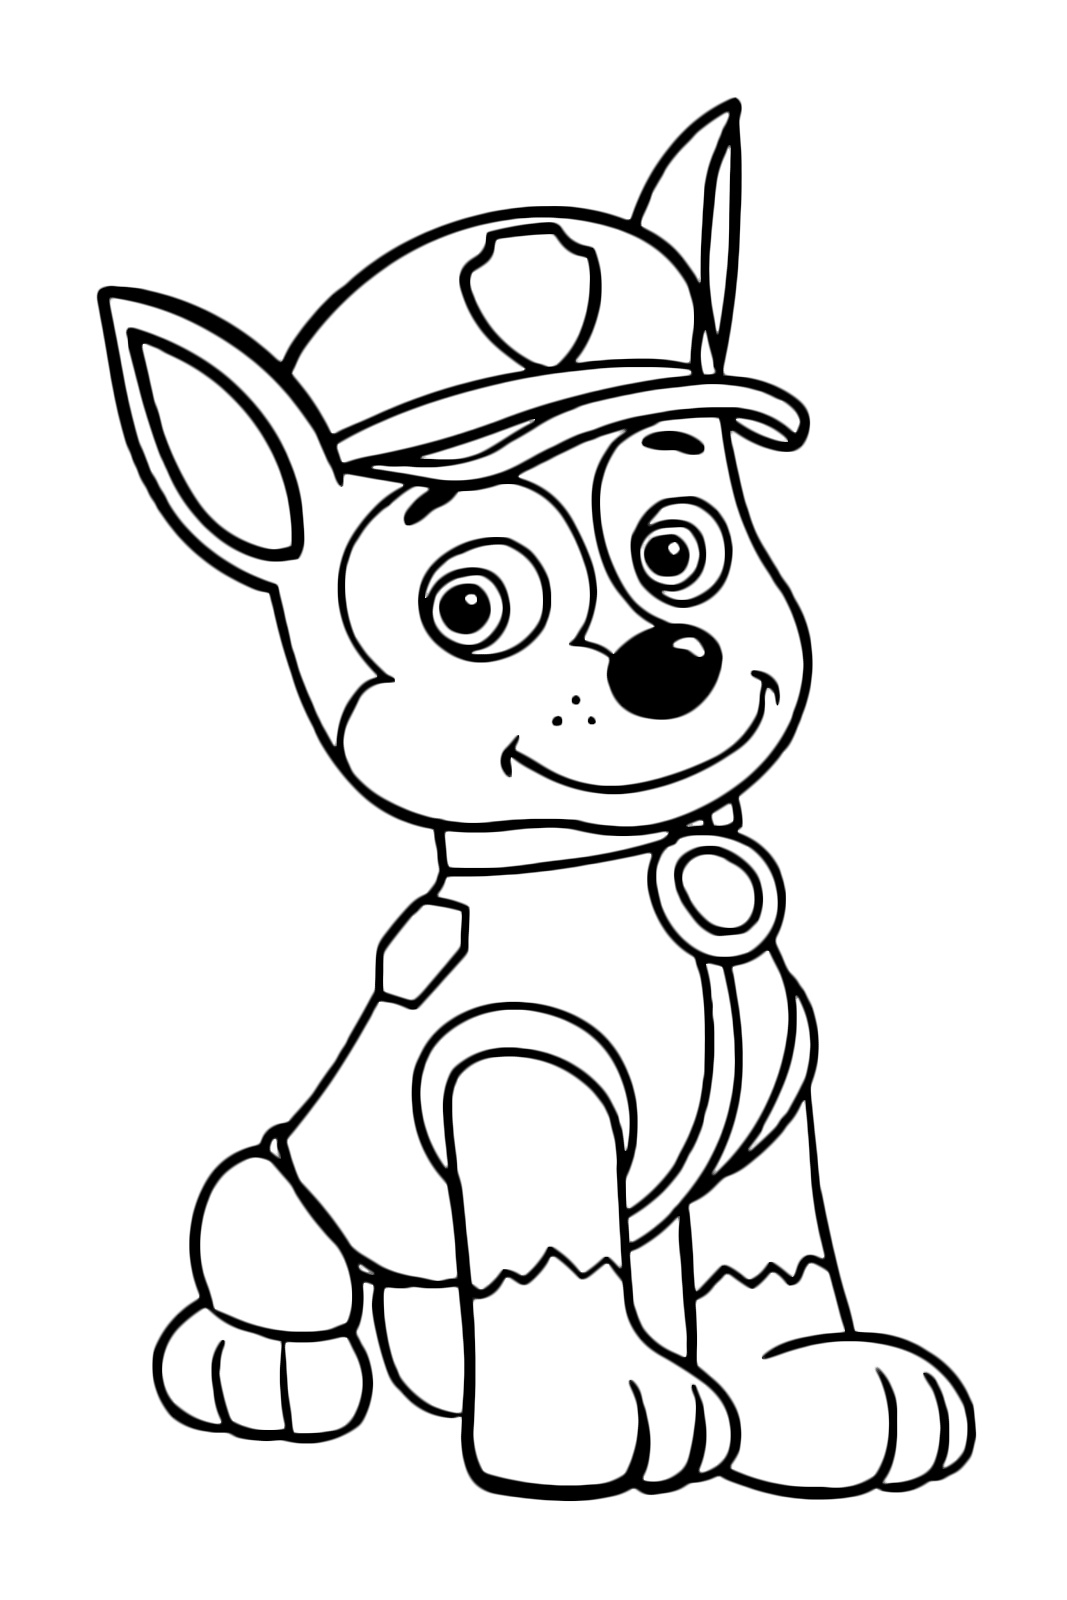 paw patrol coloring pages paw patrol coloring pages 120 pictures free printable patrol pages paw coloring